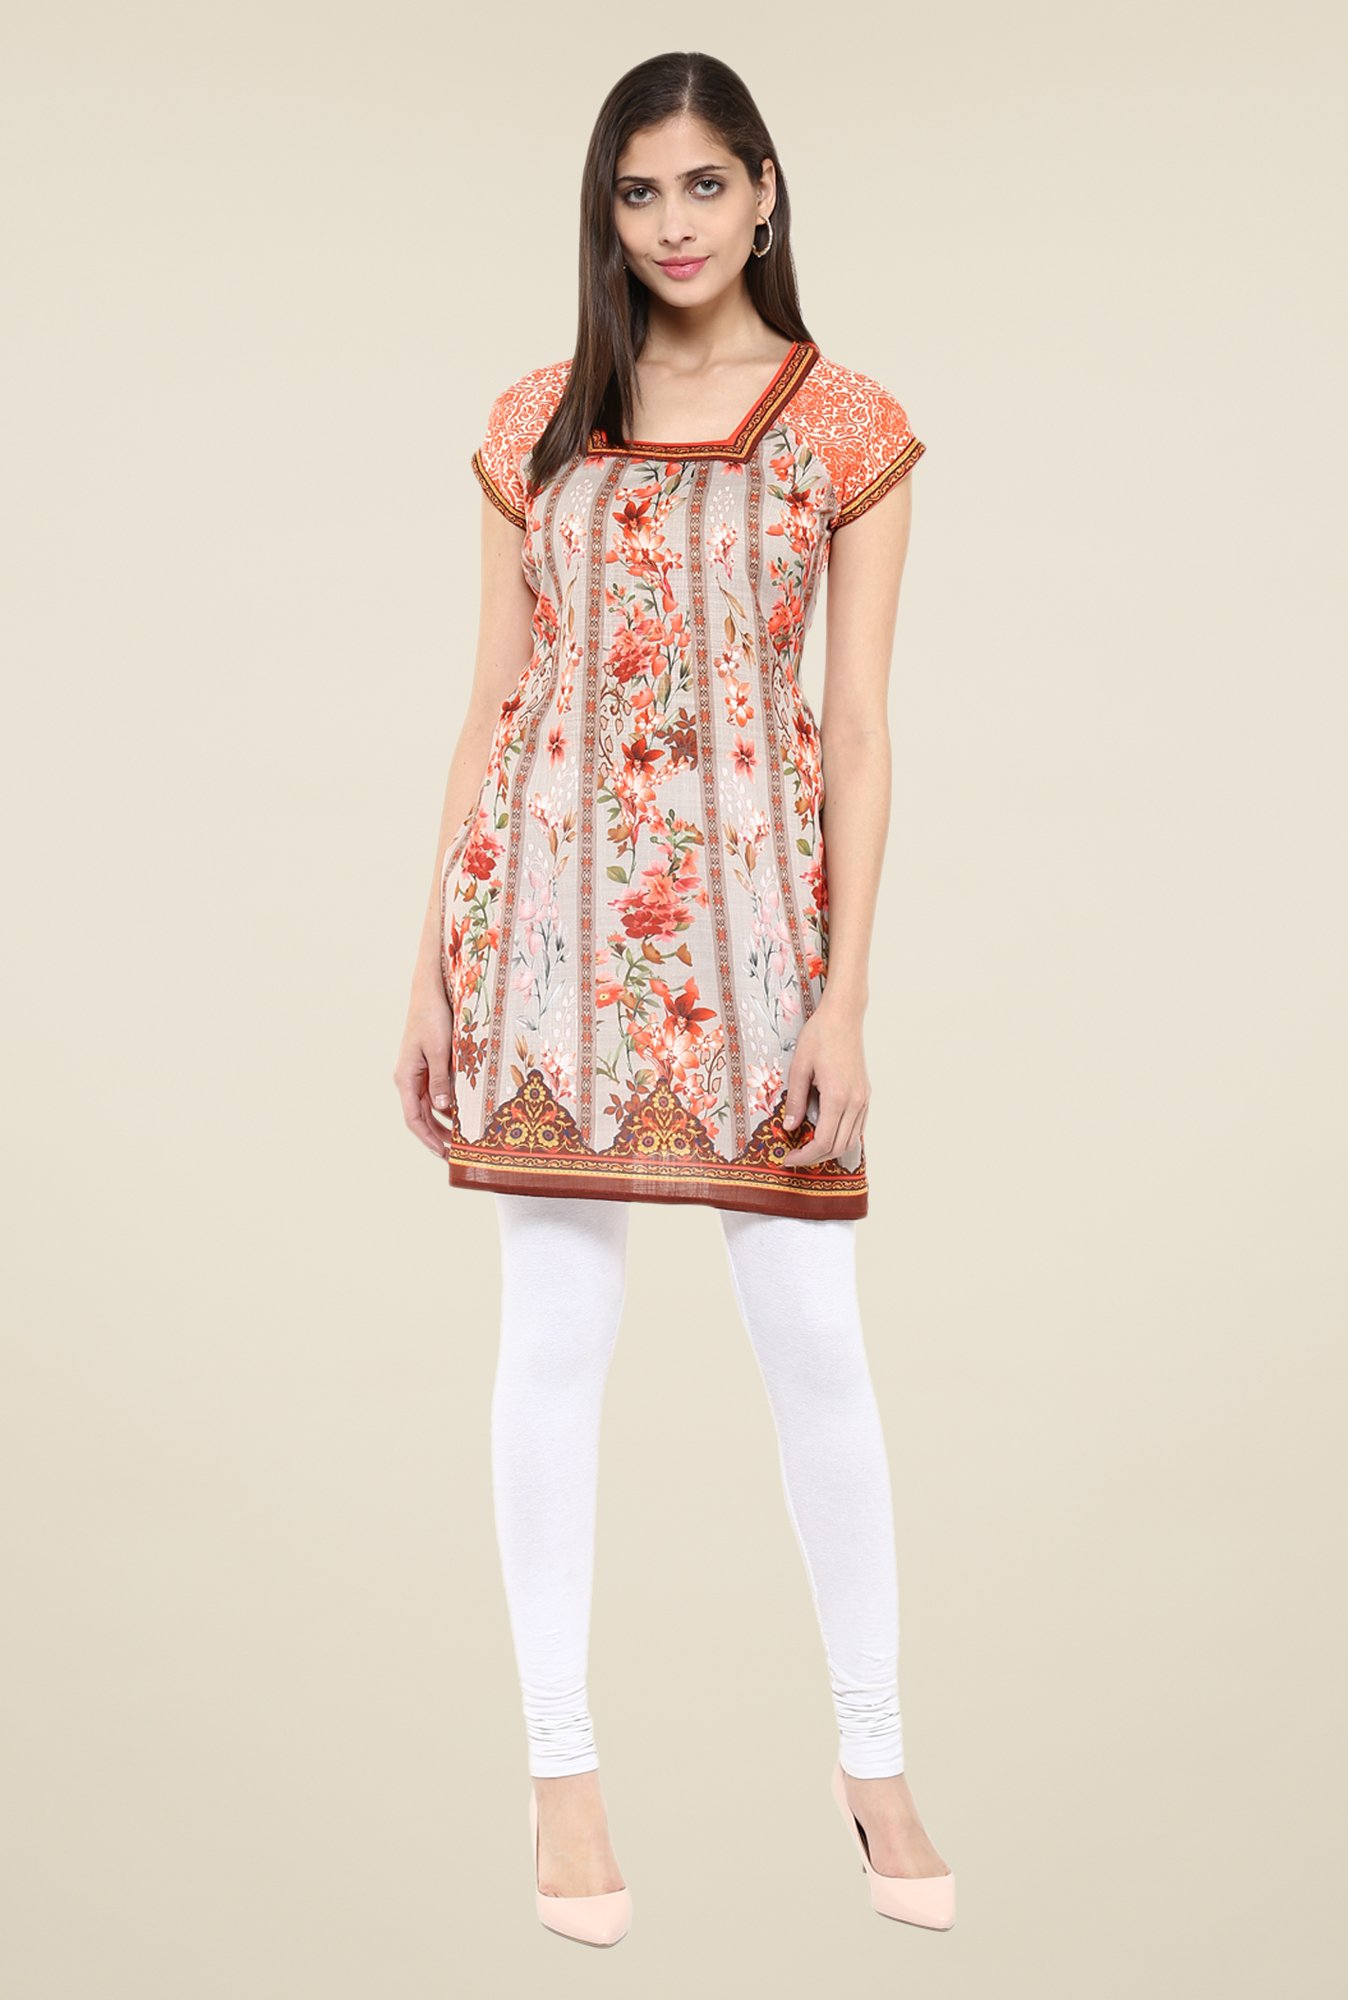 Fusion Beats Orange Floral Print Tunic